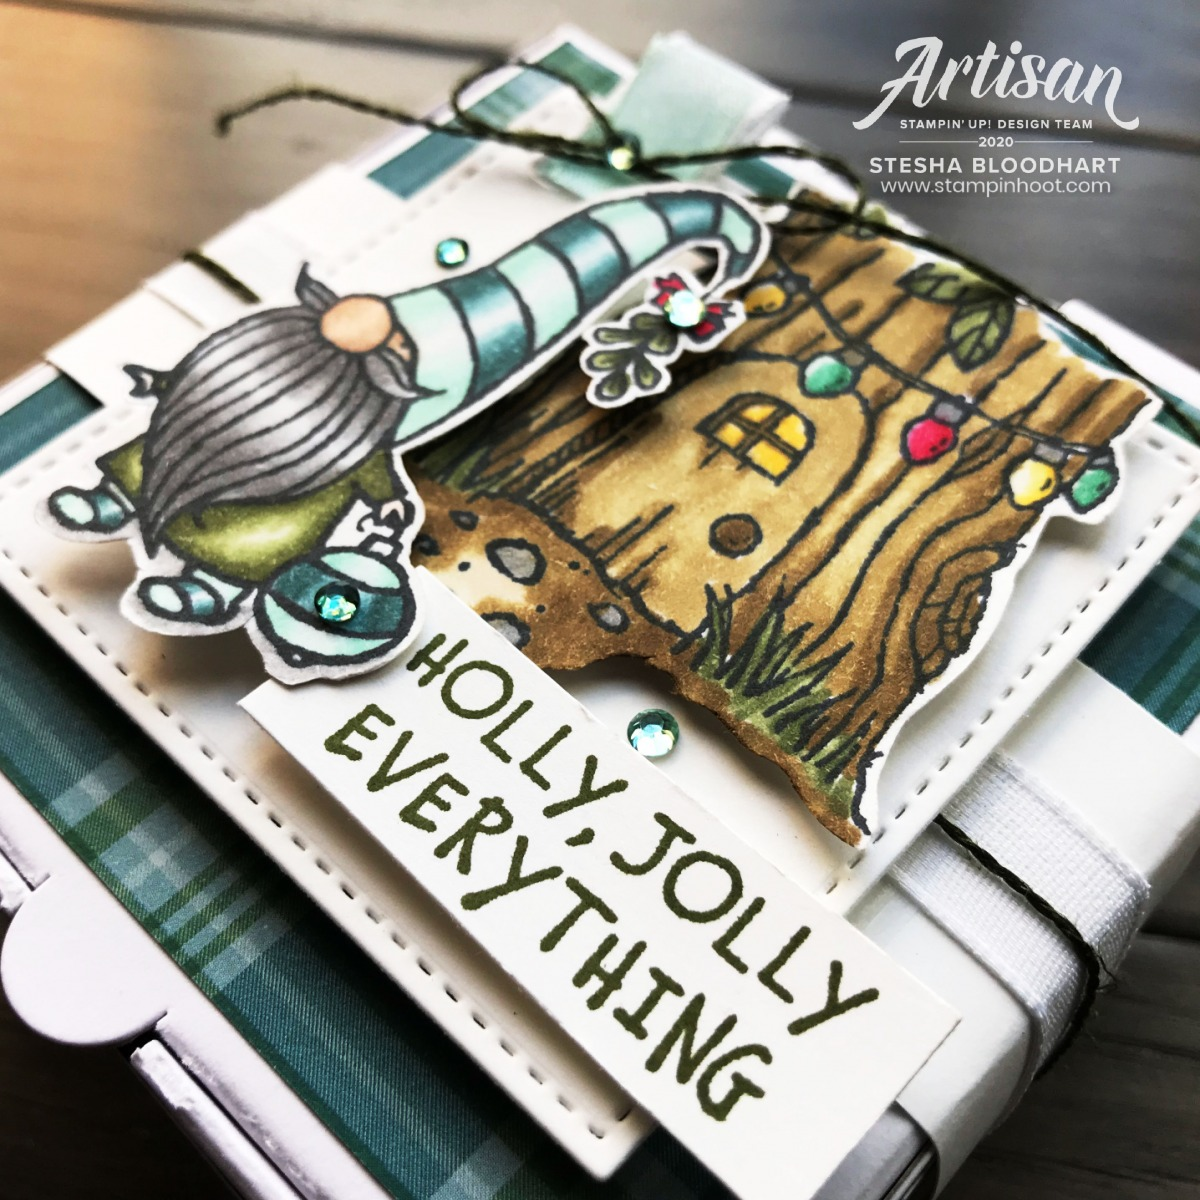 Holly Jolly Everything Gnome Mini Pizza Box From Stampin' Up! Created by Stesha Bloodhart, Stampin' Hoot! 2020 Artisan